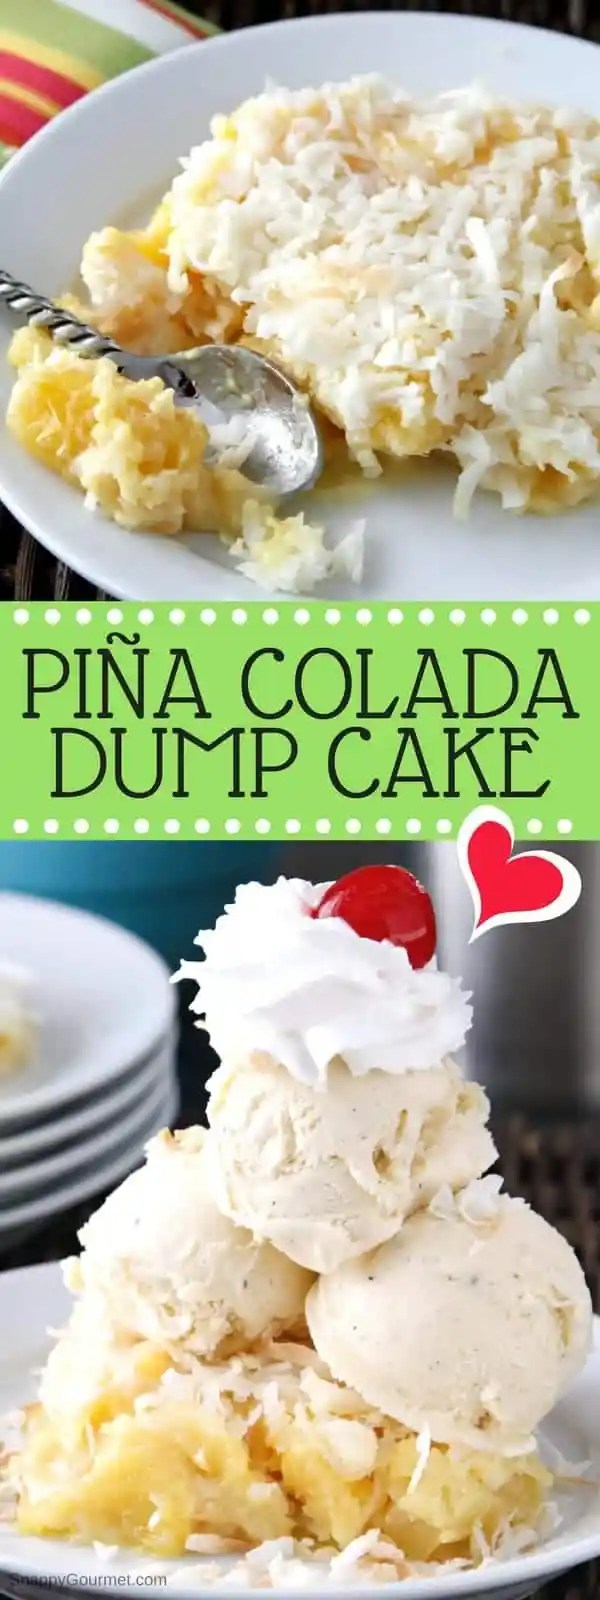 Pina Colada Dump Cake - easy dump cake recipe with pineapple, coconut, and rum. SnappyGourmet.com